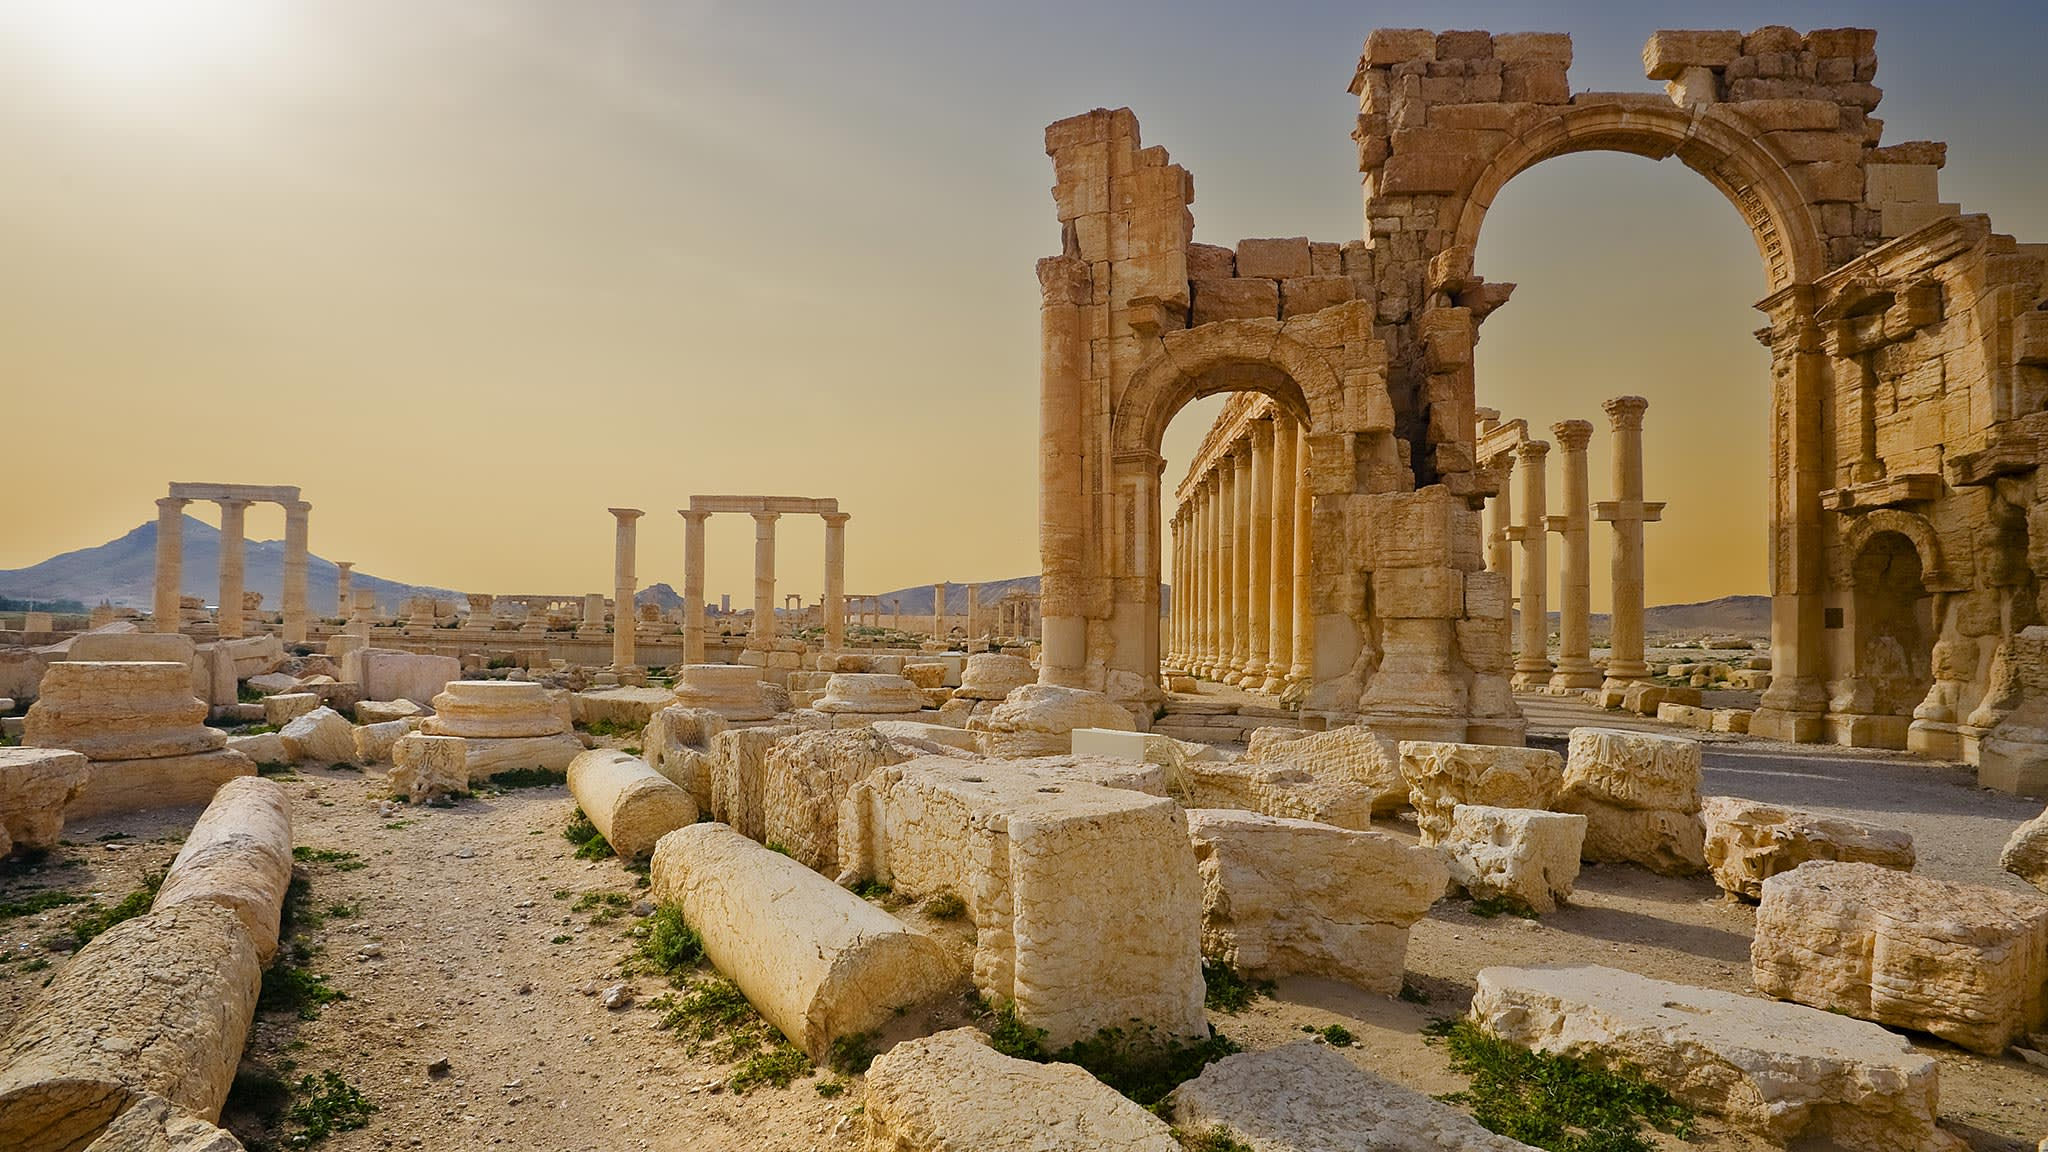 Is it time to rethink our ideas about preserving world heritage? | Financial Times